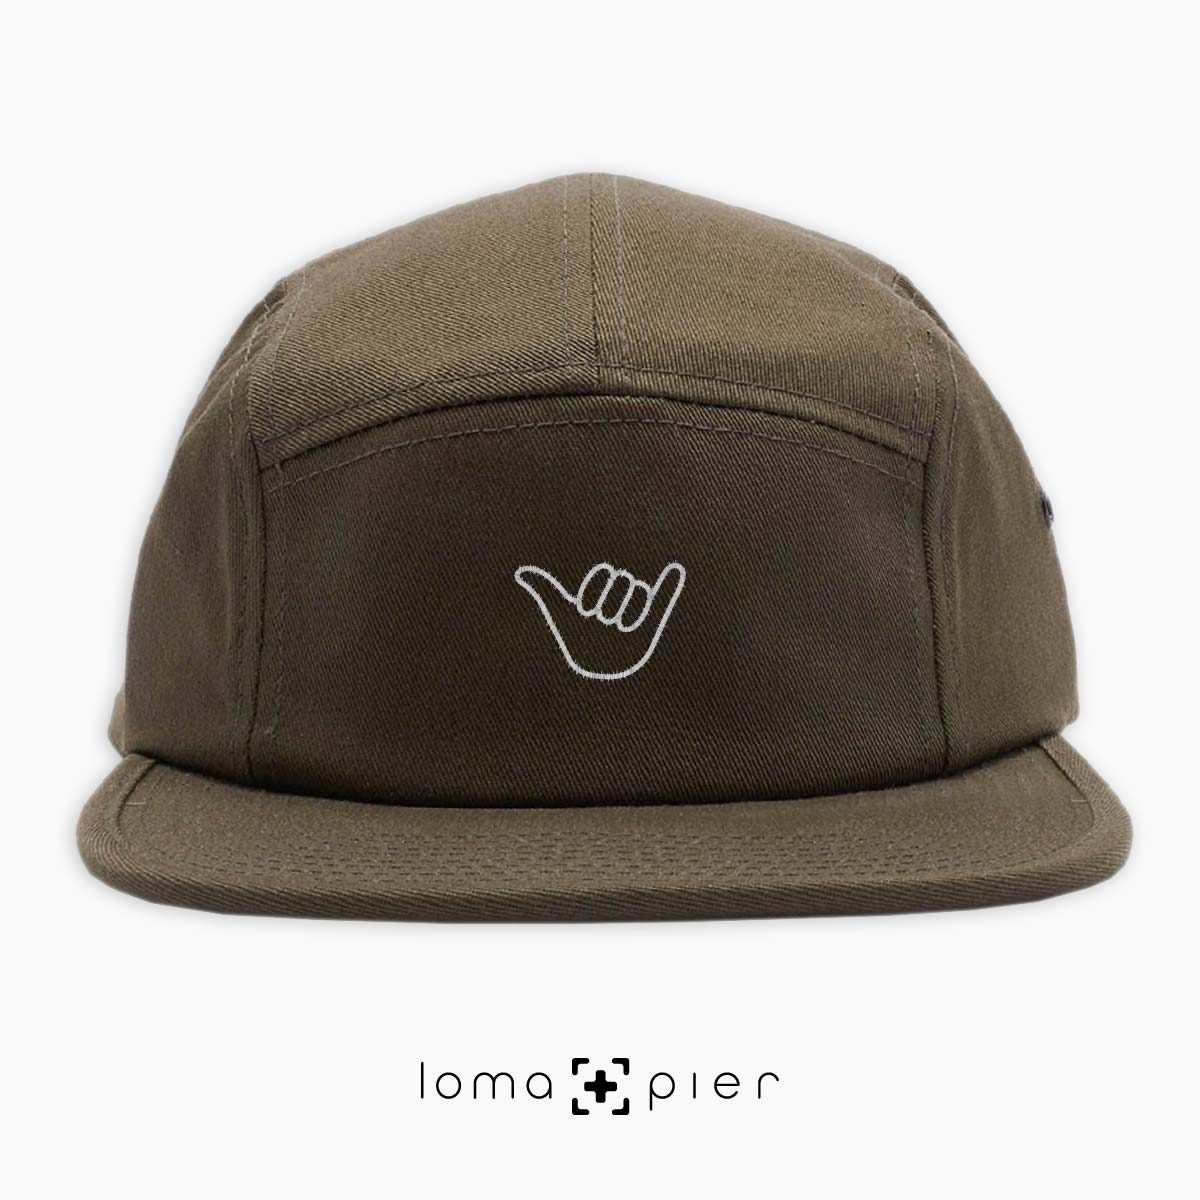 HANG LOOSE icon embroidered on an olive green cotton 5-panel hat by loma+pier hat store